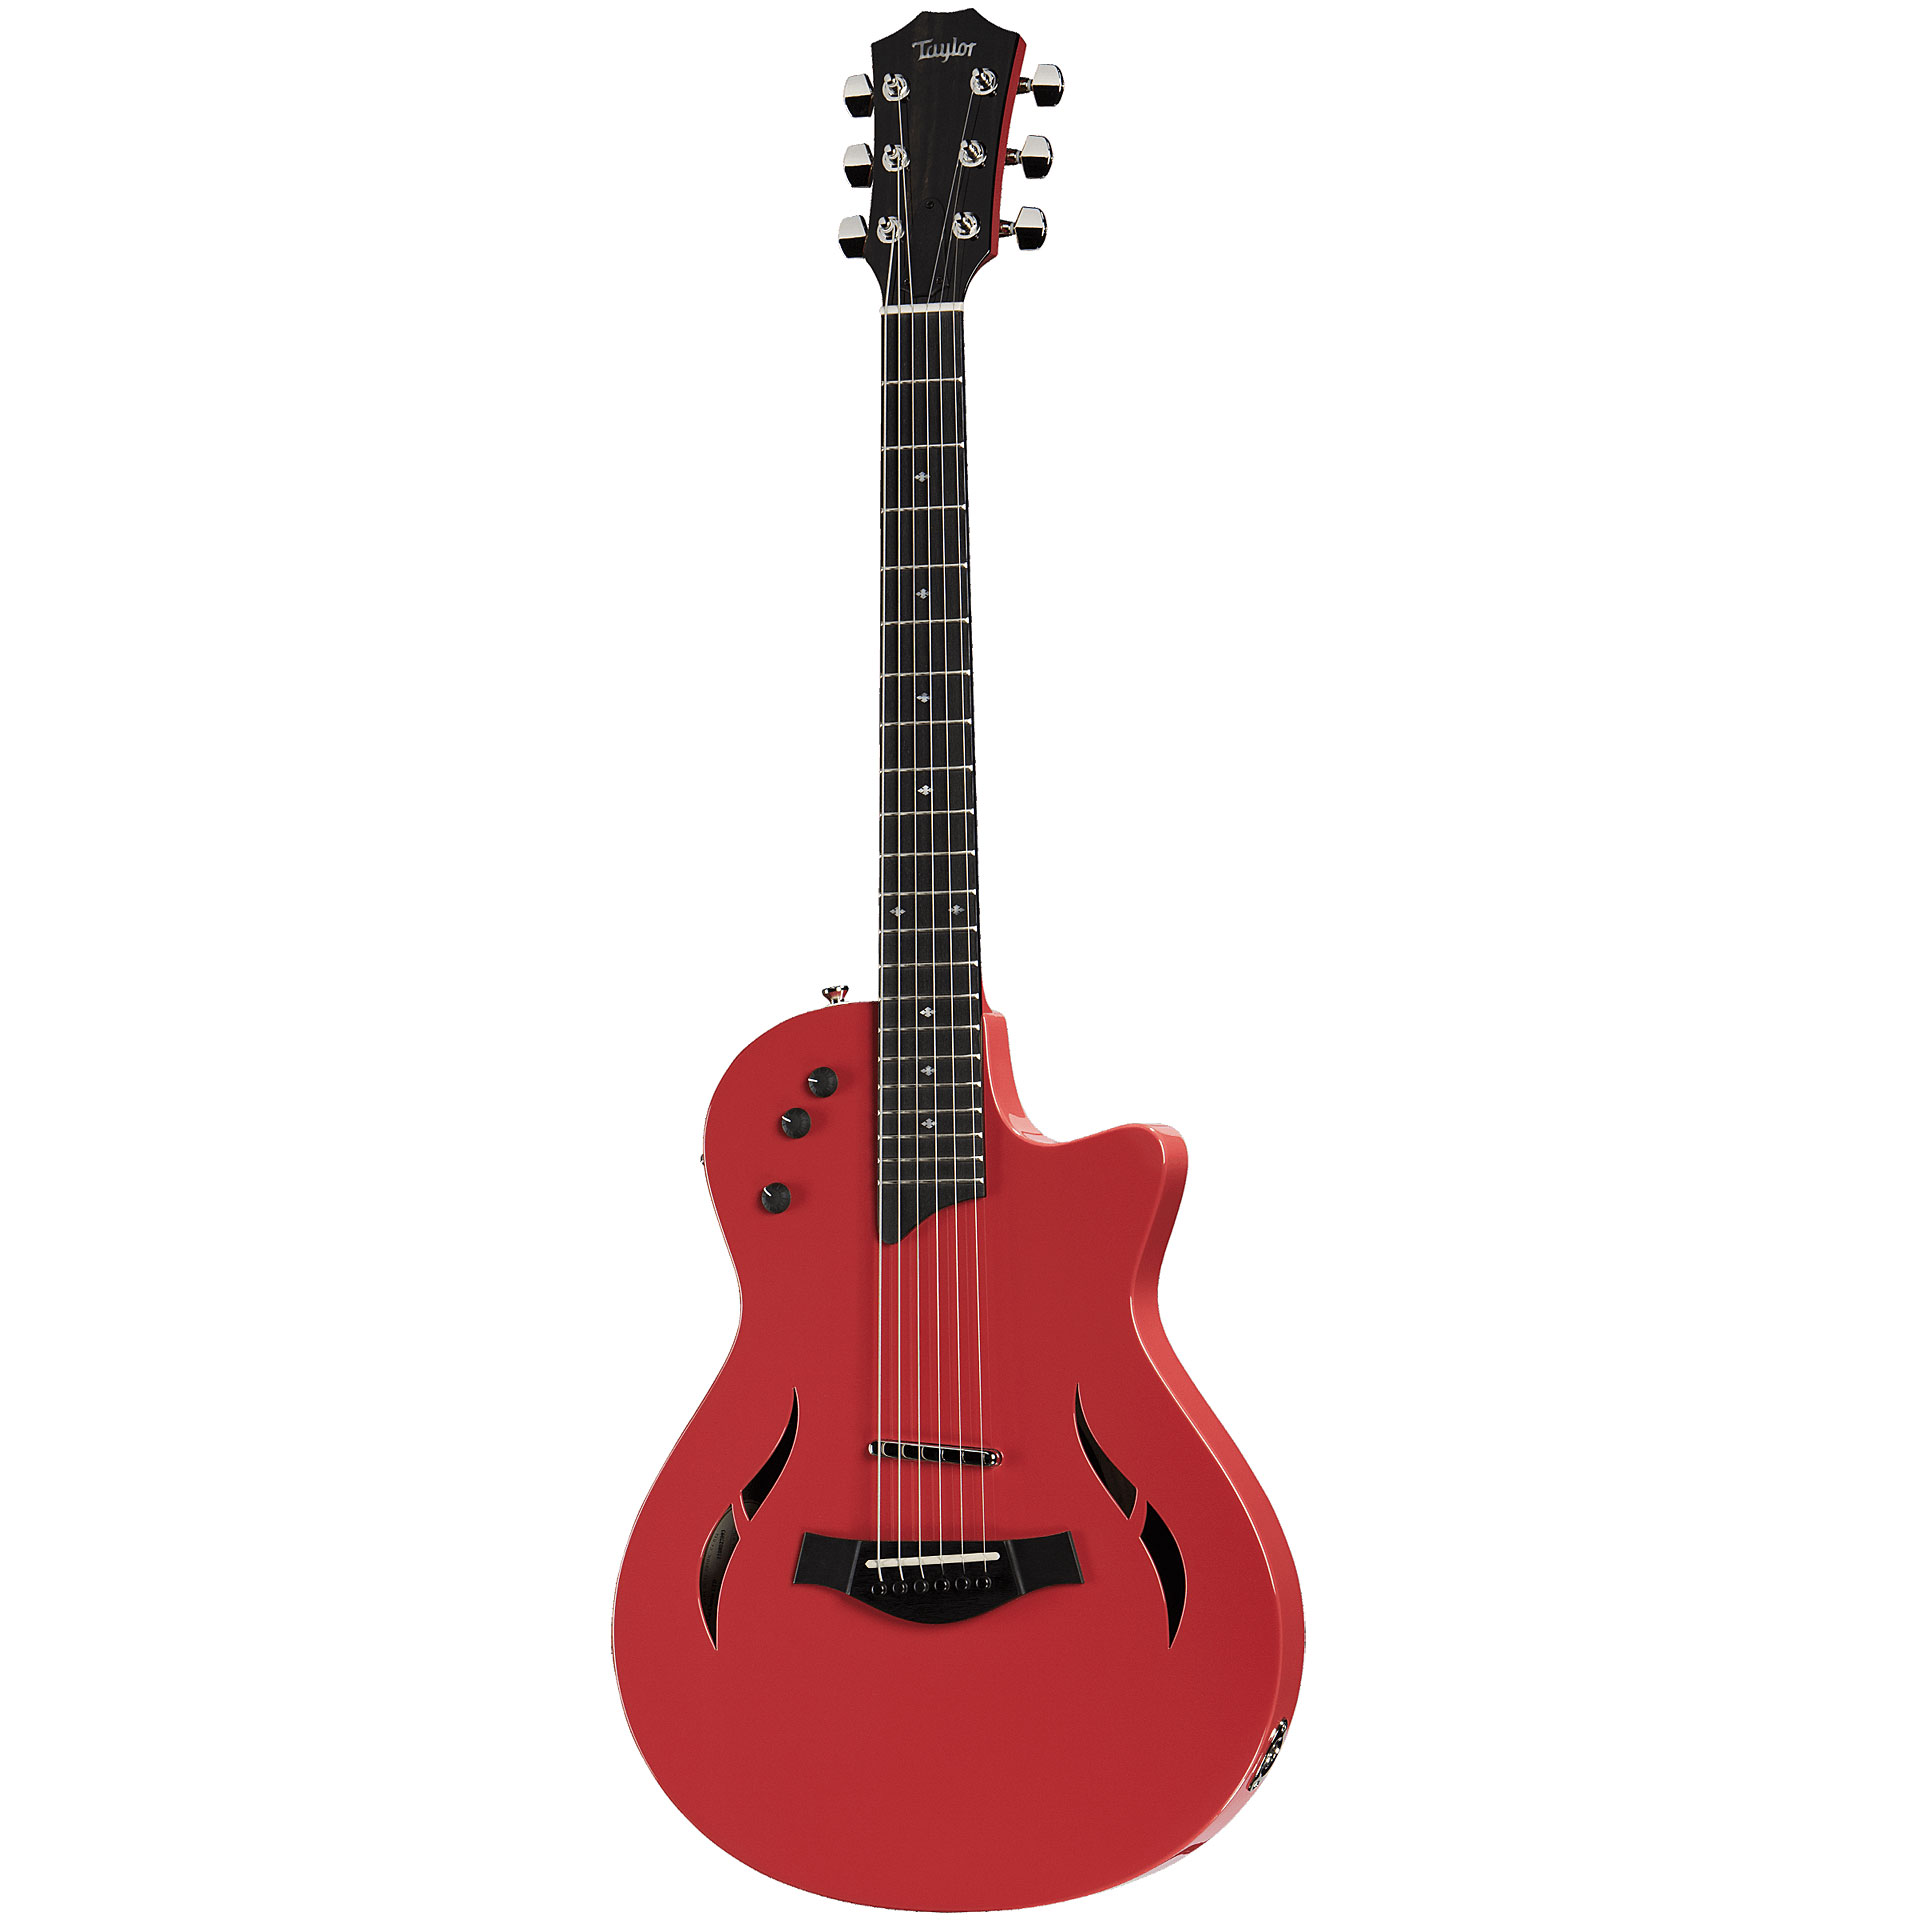 Taylor T5z Classic Dlx Ltd Fiesta Red 171 Acoustic Guitar